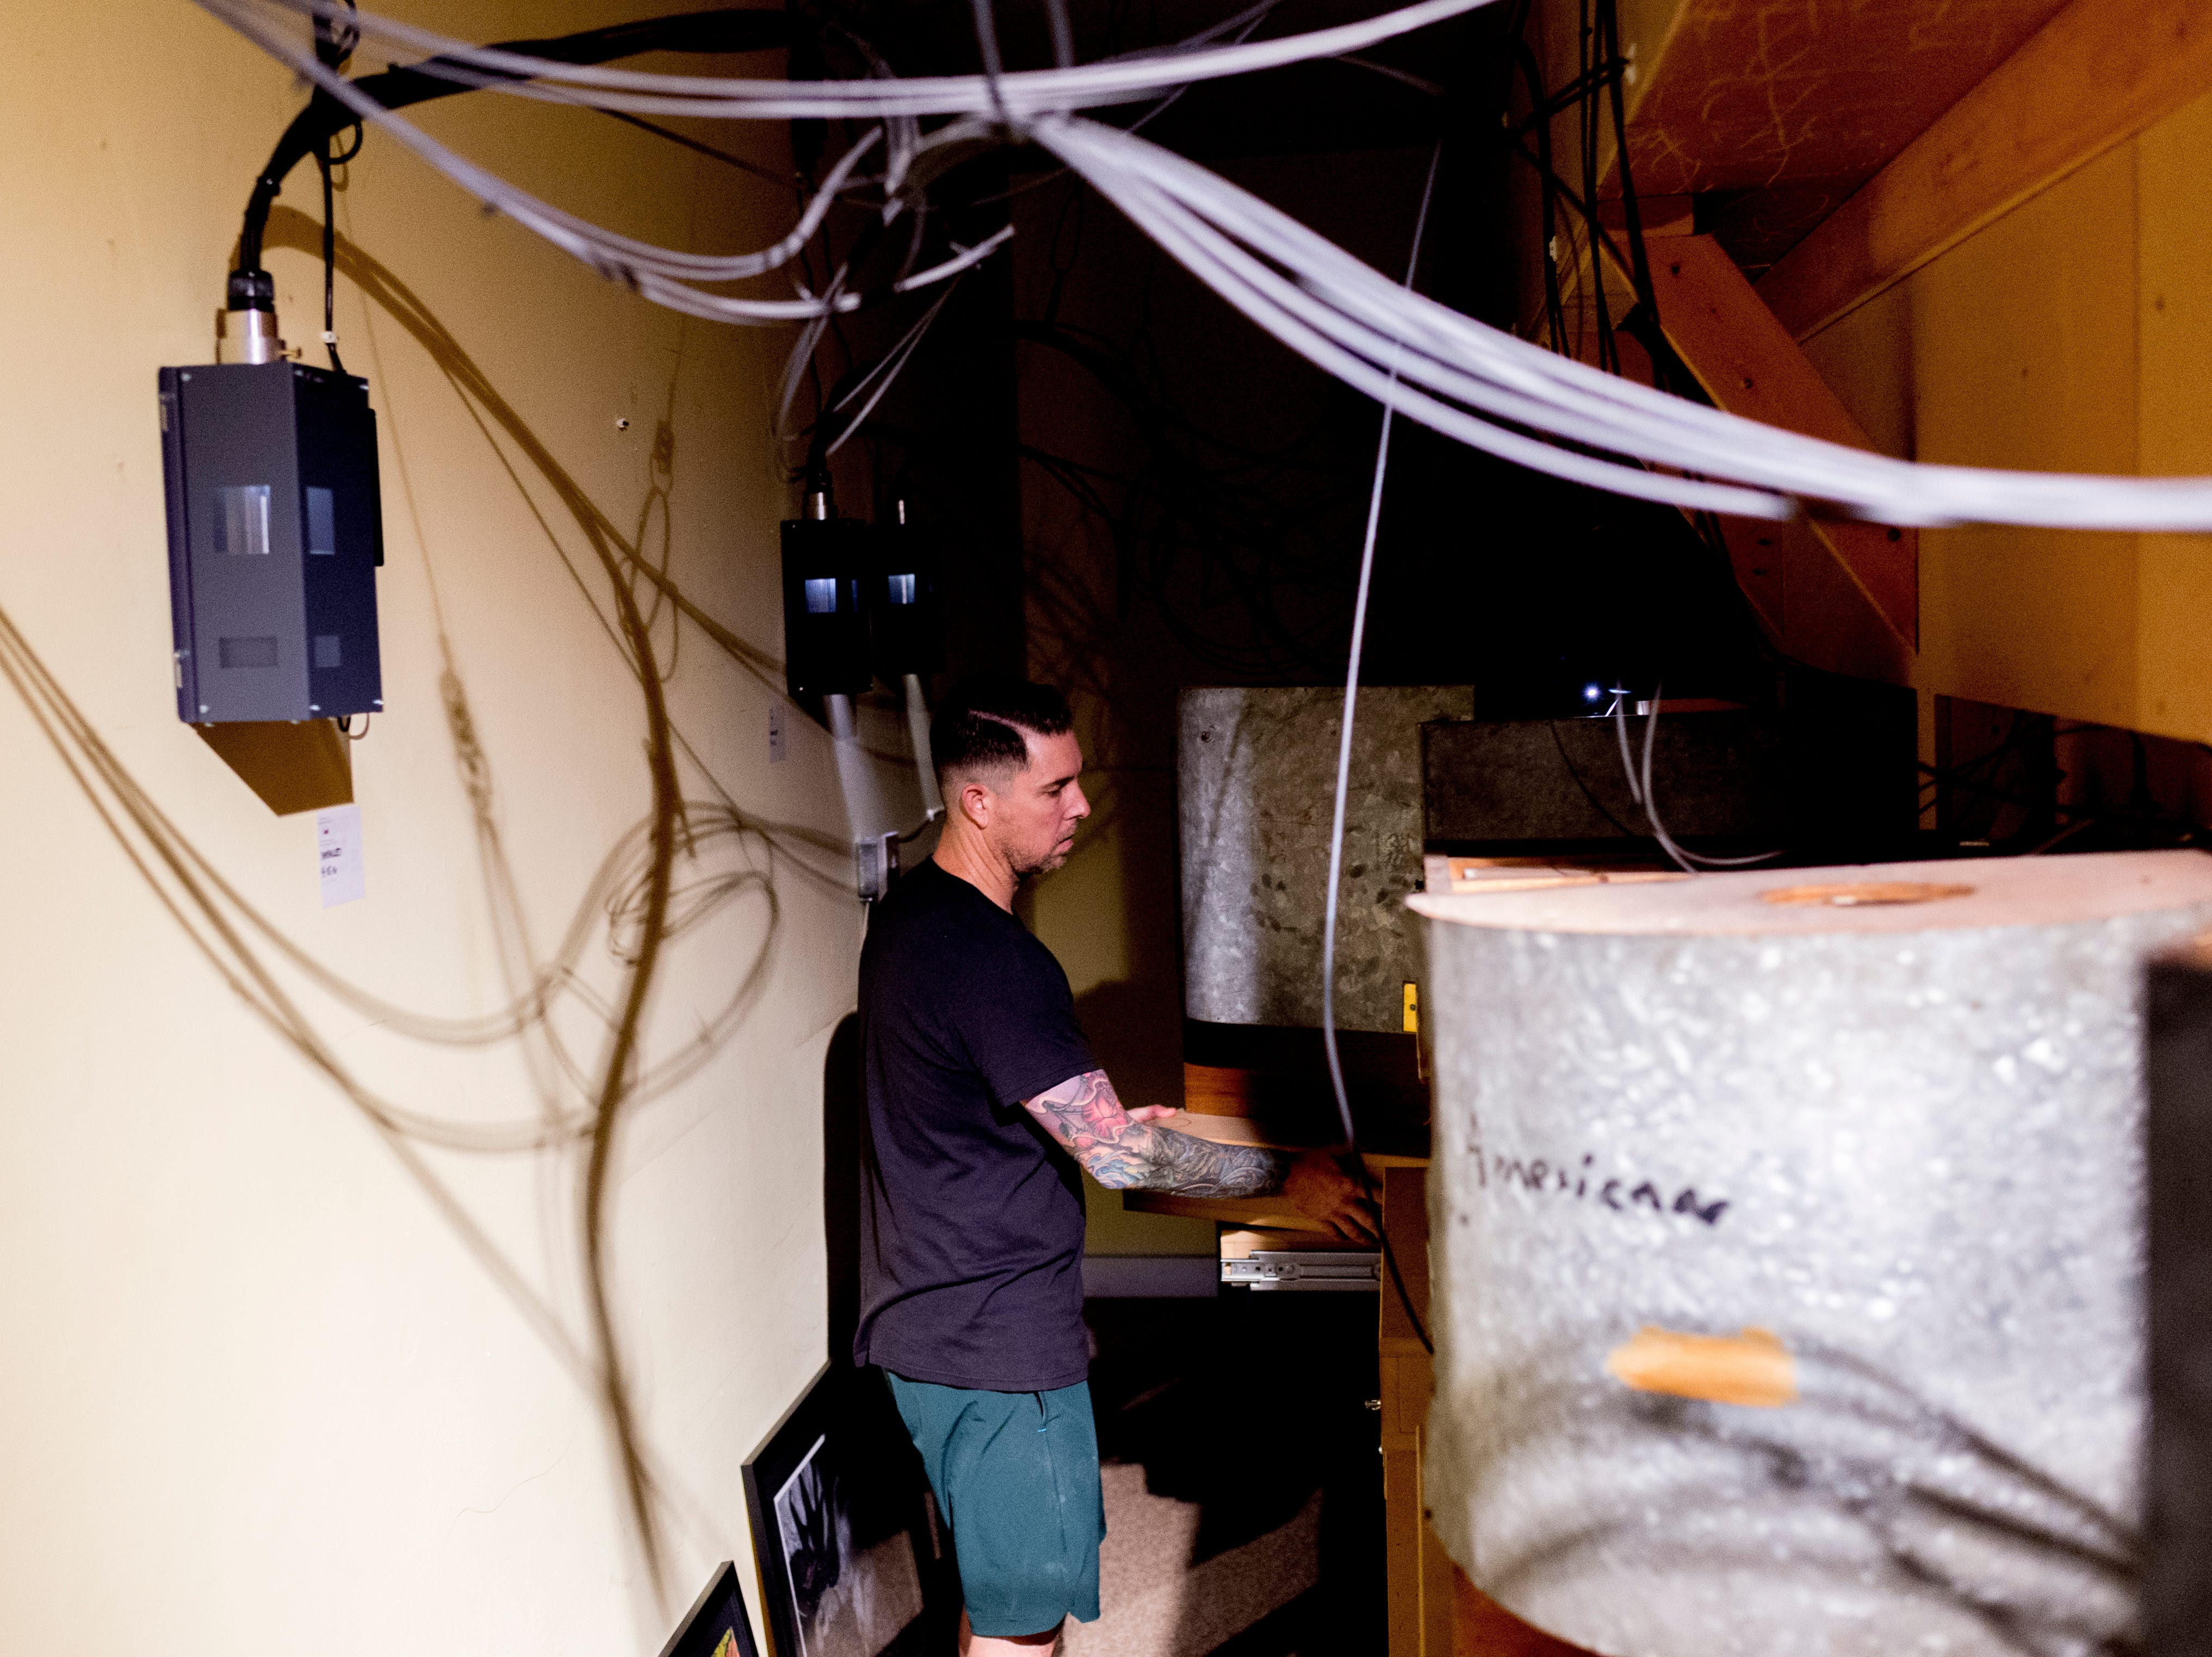 Robmat Butler, preparator at the Knoxville Museum of Art, works in the crawlspace behind the exhibit in the Thorne Room in Knoxville, Tennessee on Tuesday, August 21, 2018. The nine miniature rooms were created in the 1930s and 40s by Narcissa Niblack Thorne to a scale of one inch to one foot.